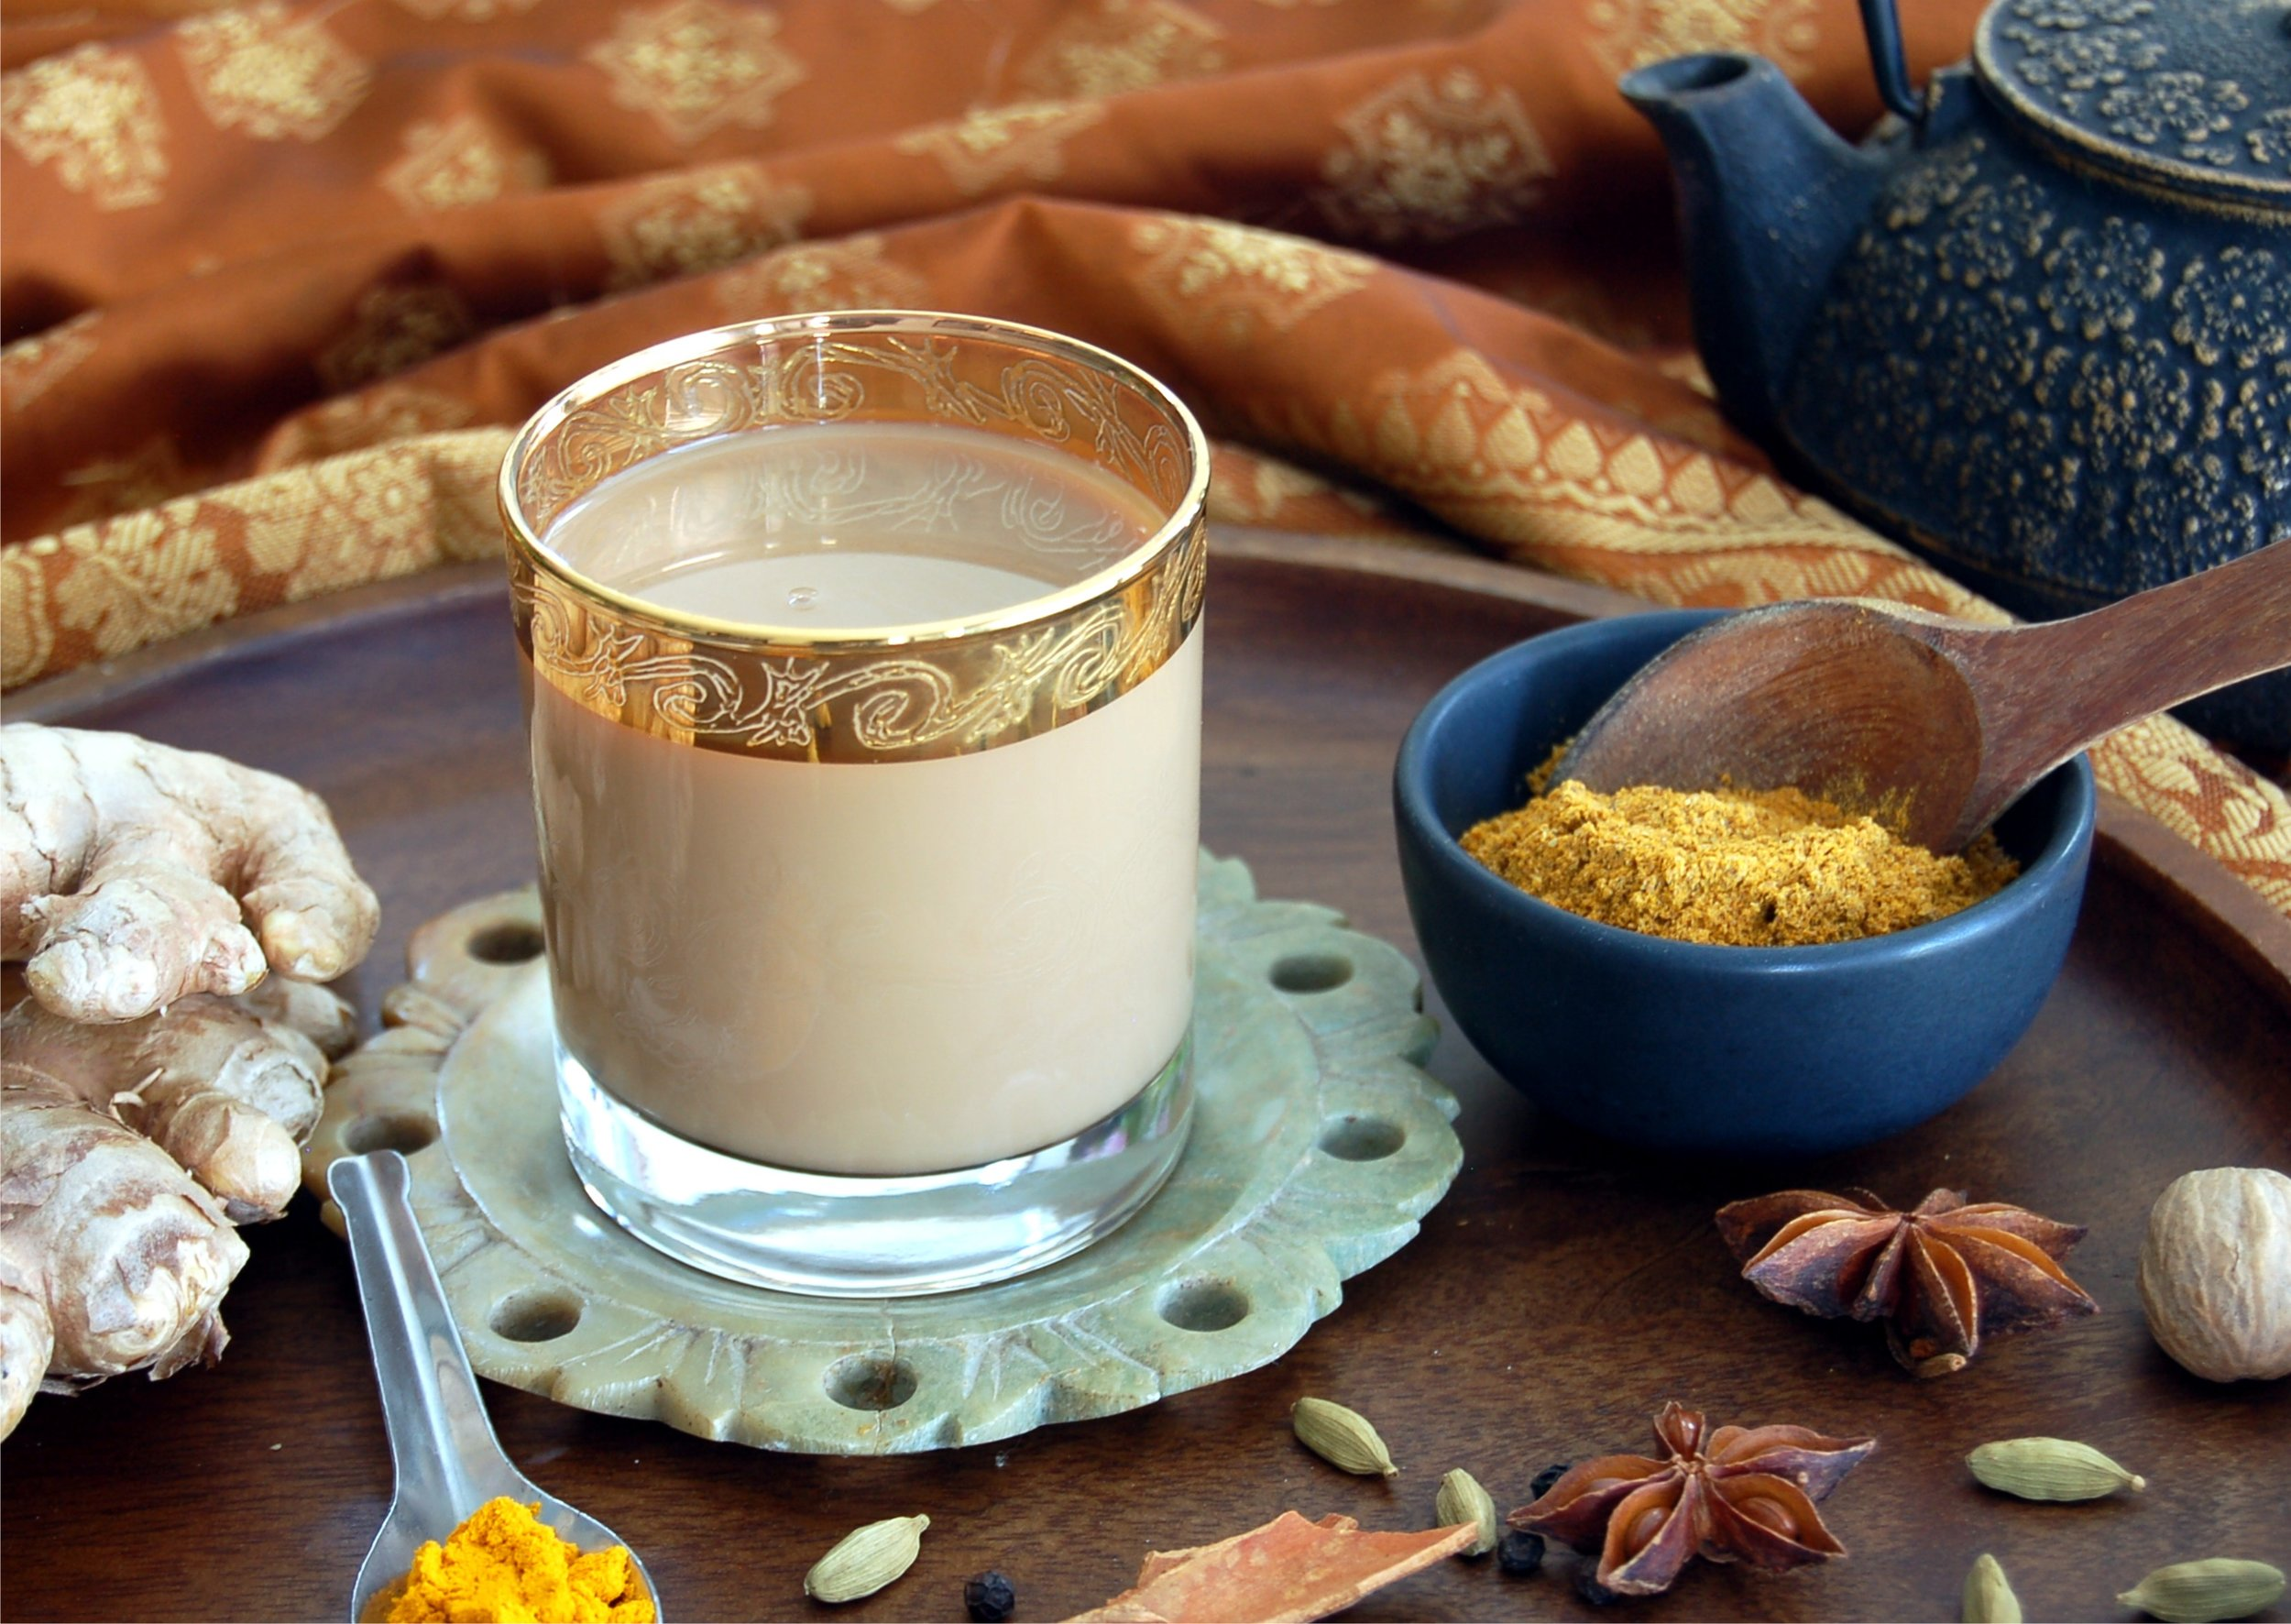 Authentic Healing Turmeric Masala Chai